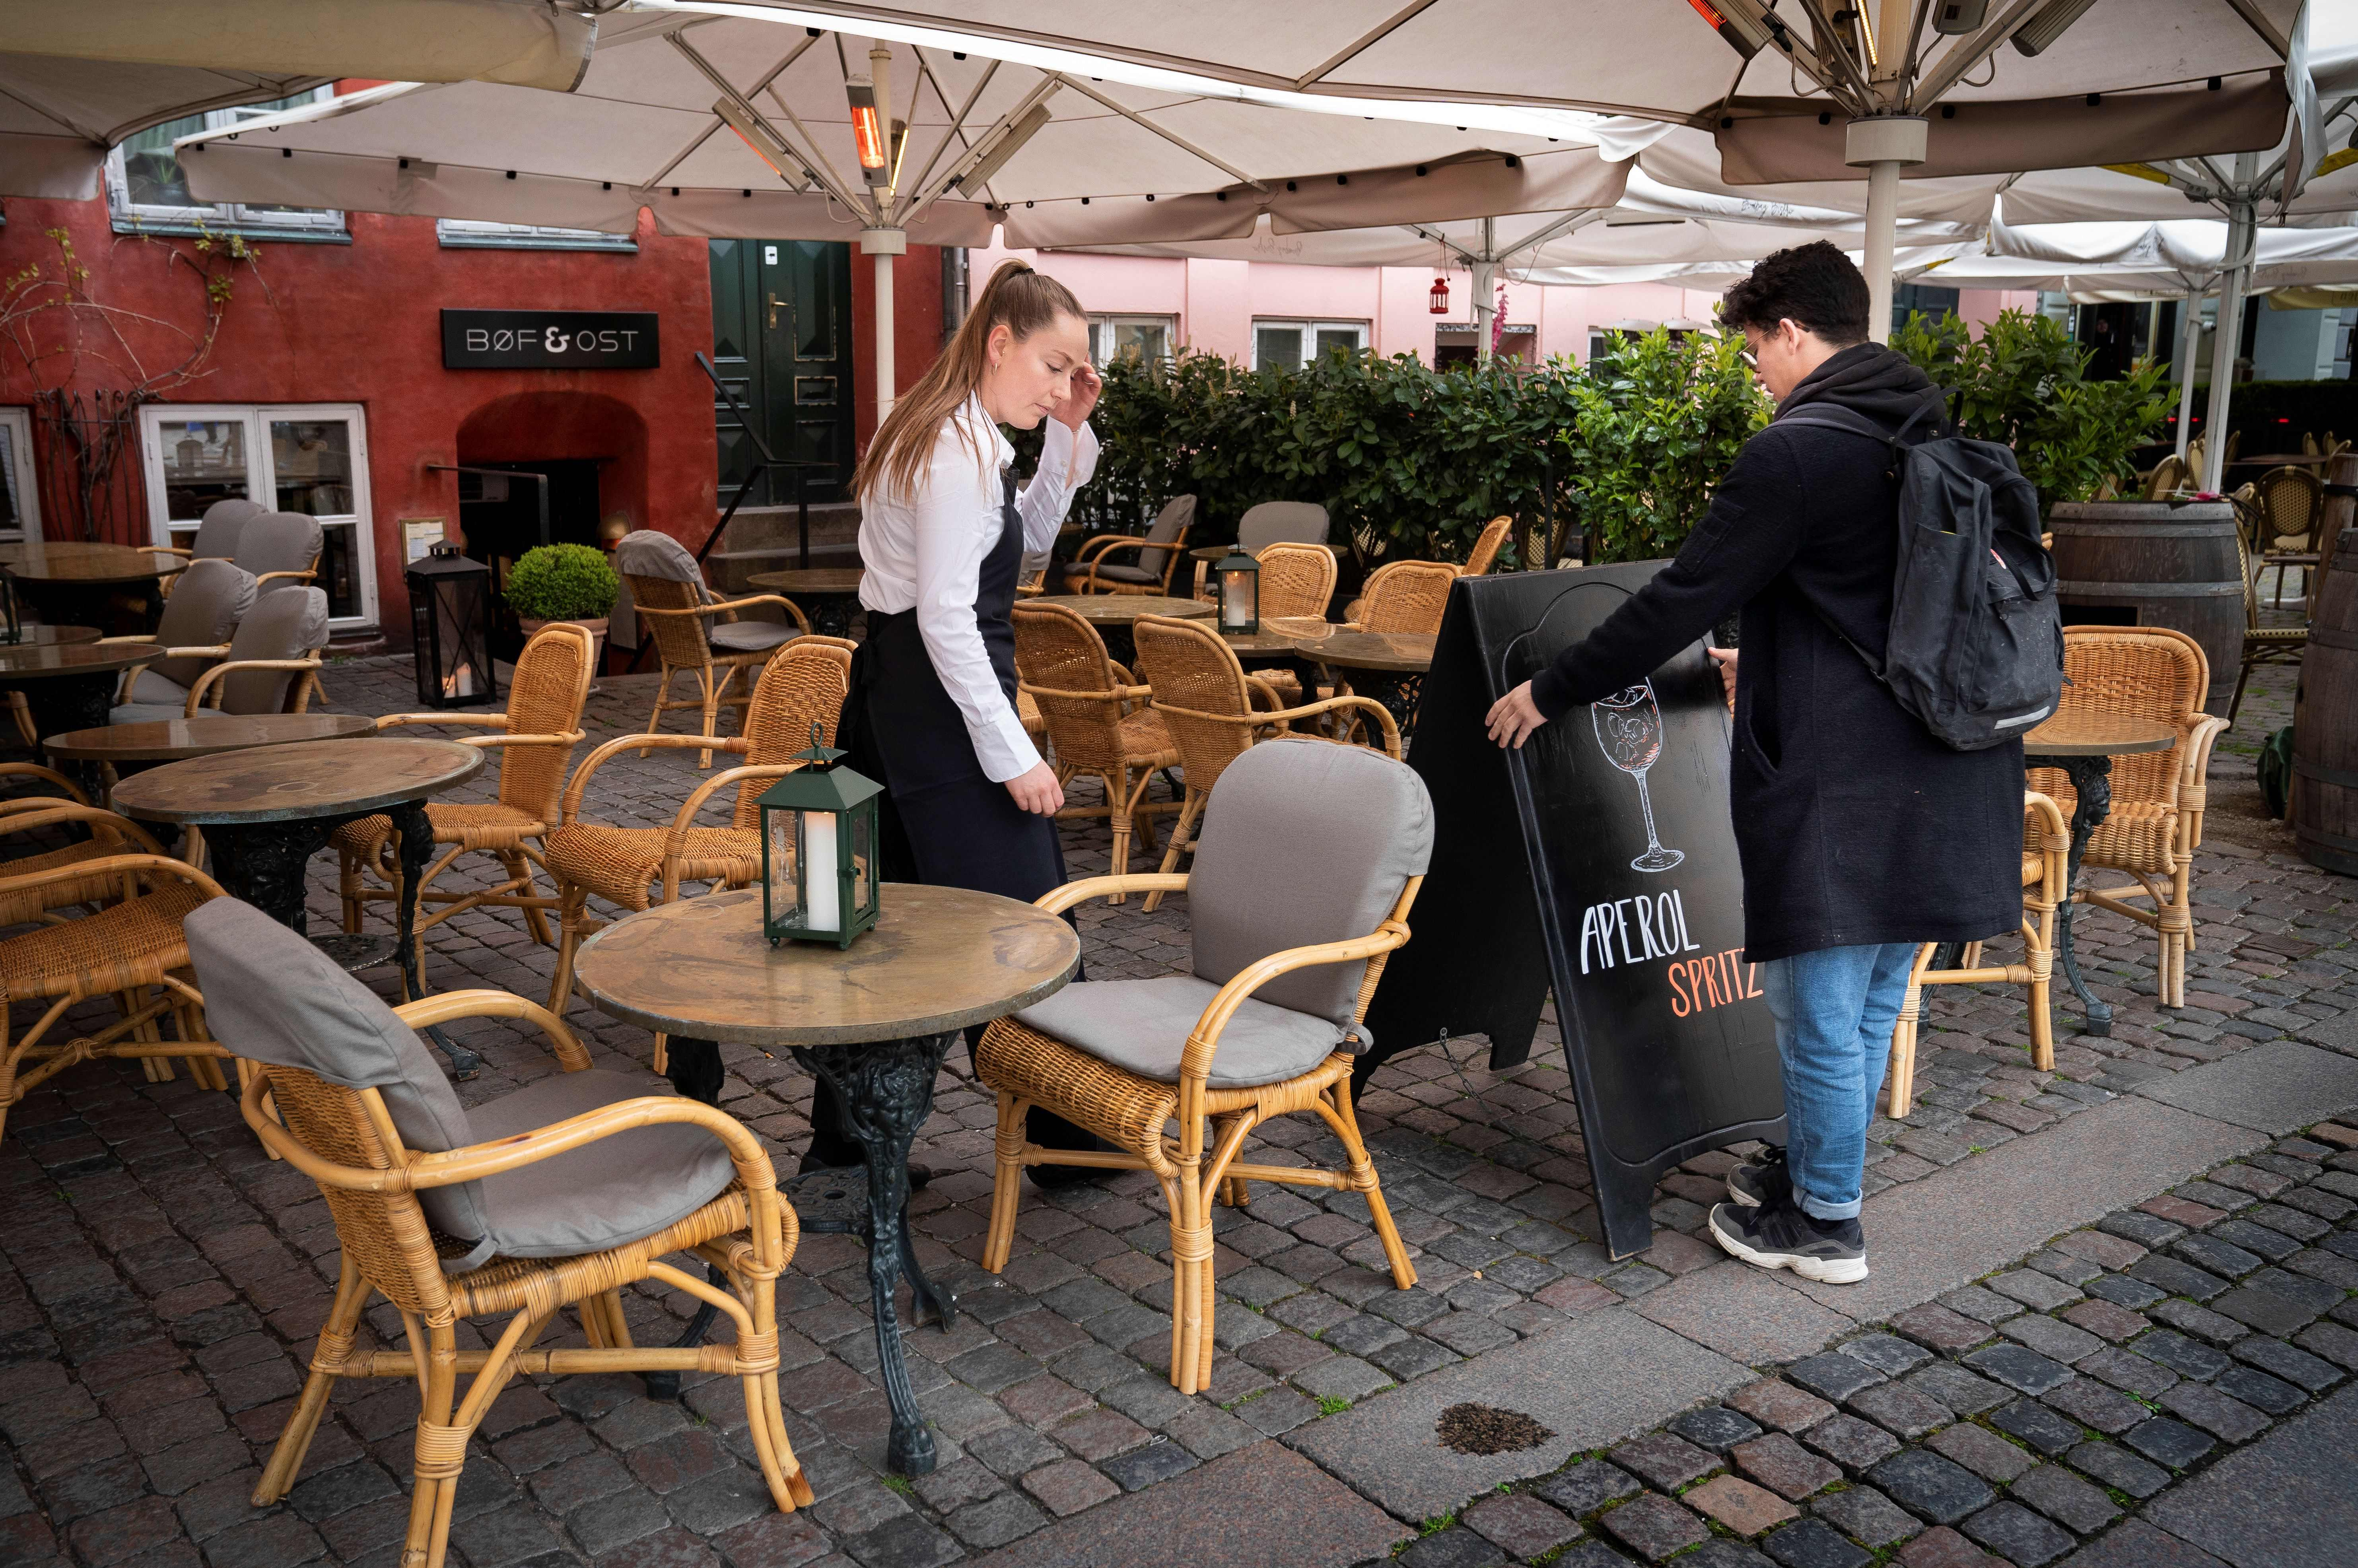 Employees prepare the terrasse of Boef & Ost restaurant at Graabroedre square in Copenhagen before its reopening on May 18, 2020. (Photo by LISELOTTE SABROE/Ritzau Scanpix/AFP via Getty Images)